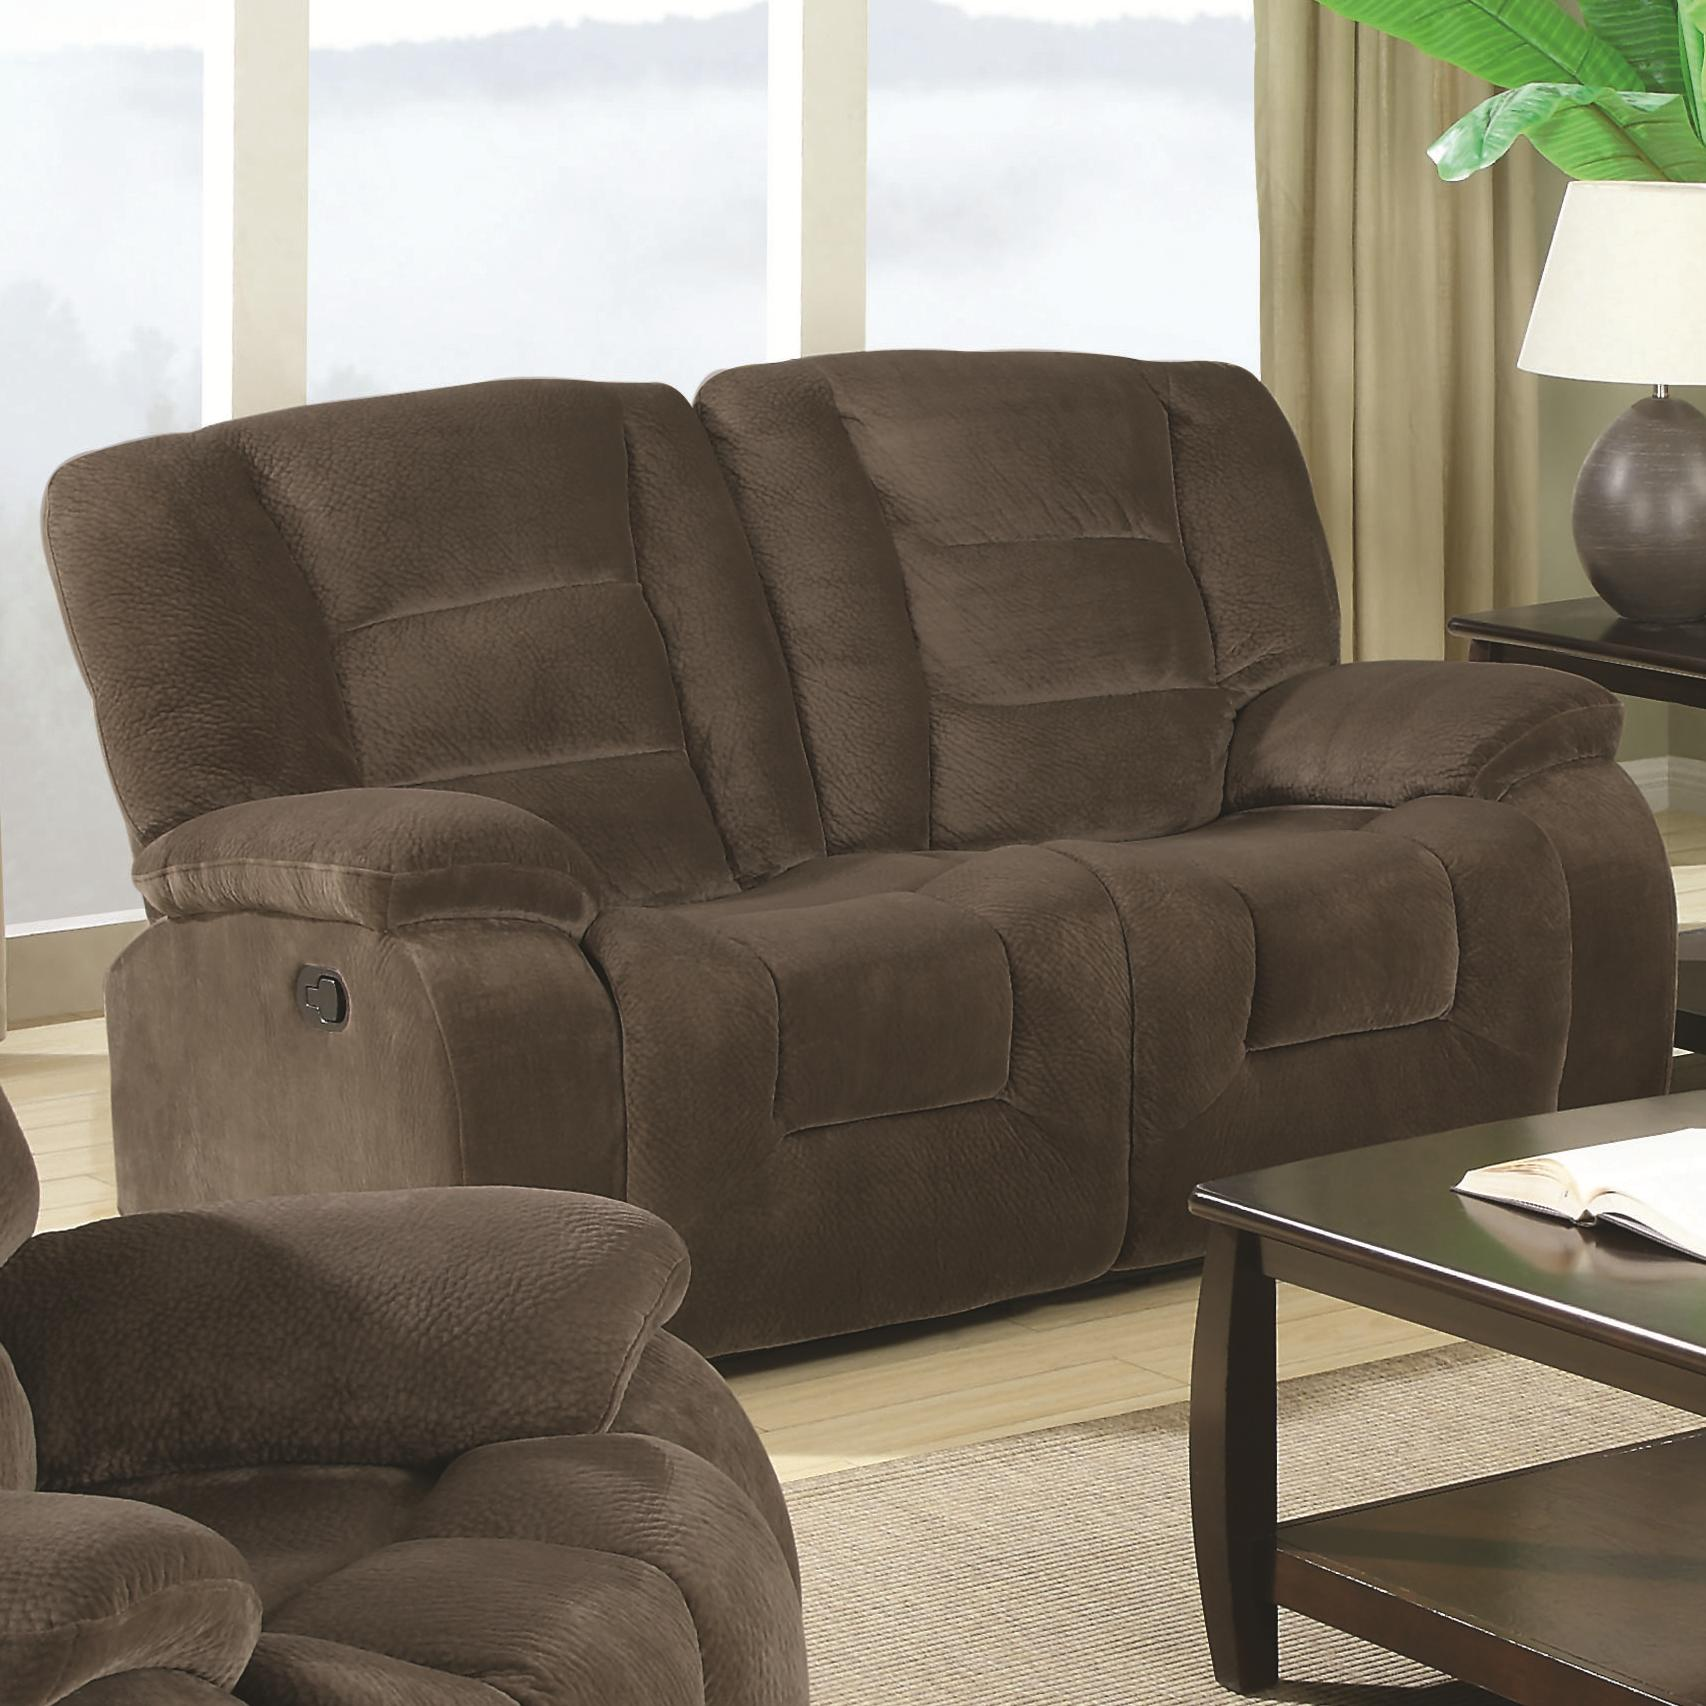 recliners s with chair wing lazy cover dual loveseat c of reclining full size slipcover boy recliner grey for slipcovers